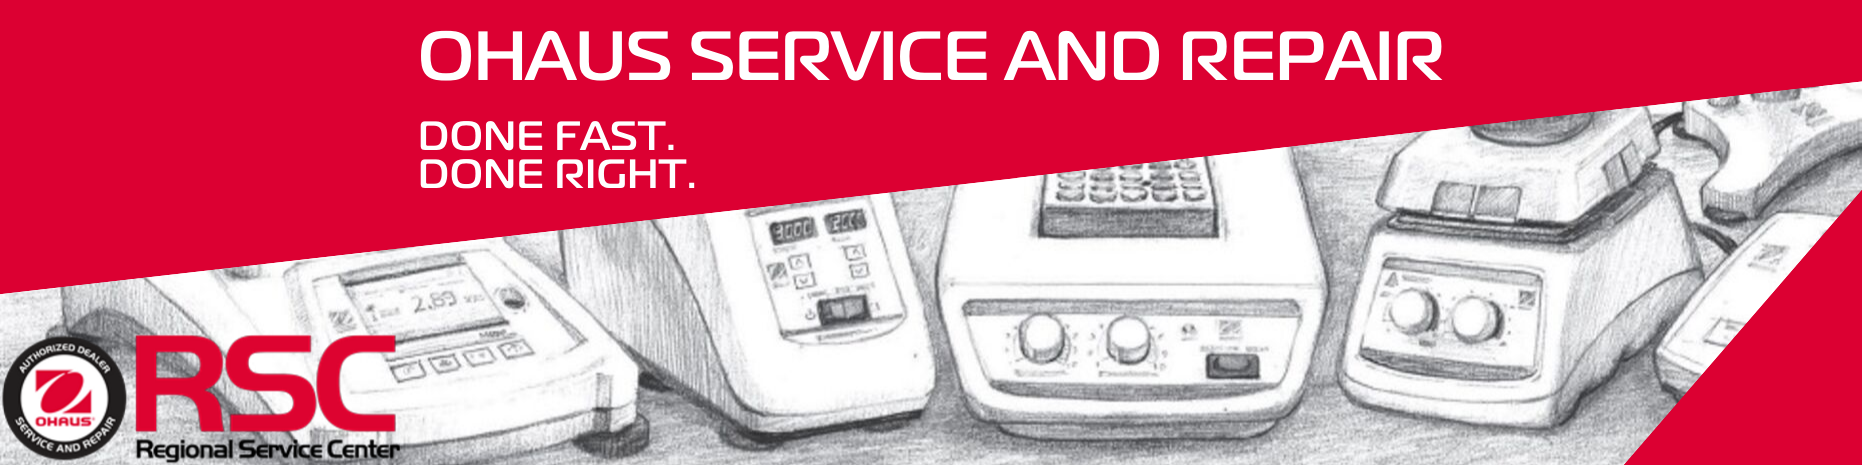 Authorized Ohaus Regional Service Center